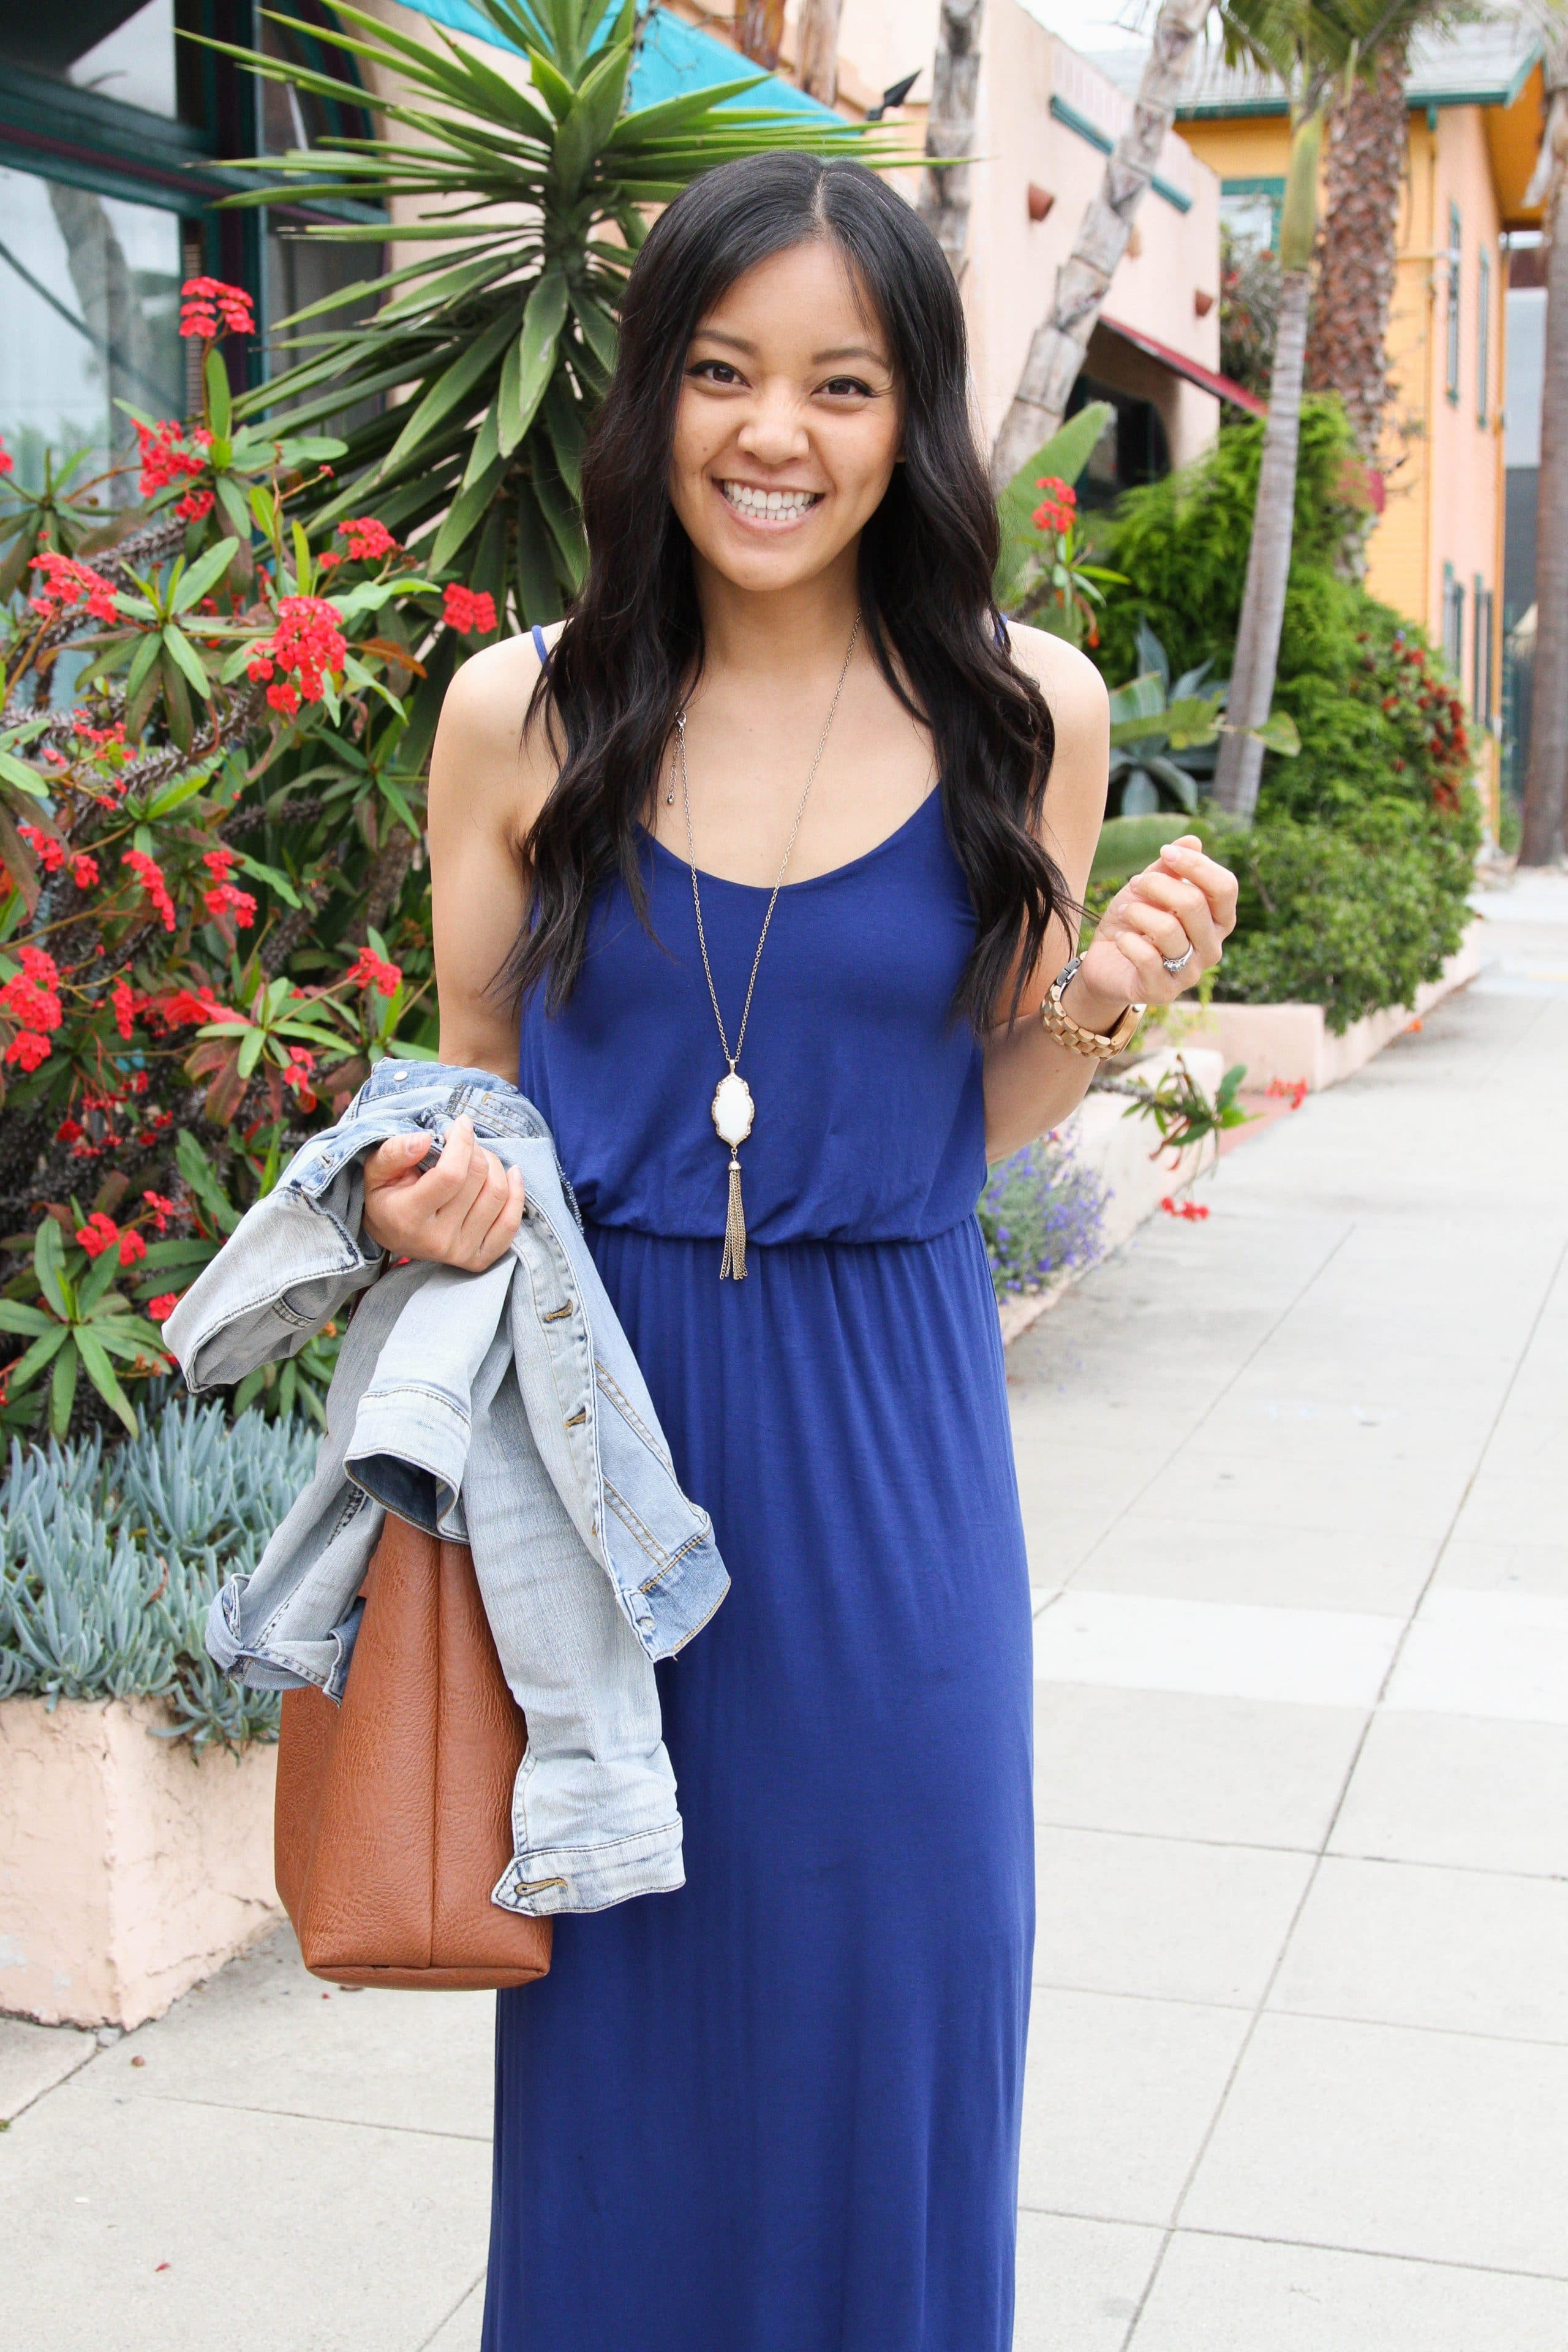 b06d095b1 blue maxi dress, denim jacket off, brown tote and pendant necklace ...